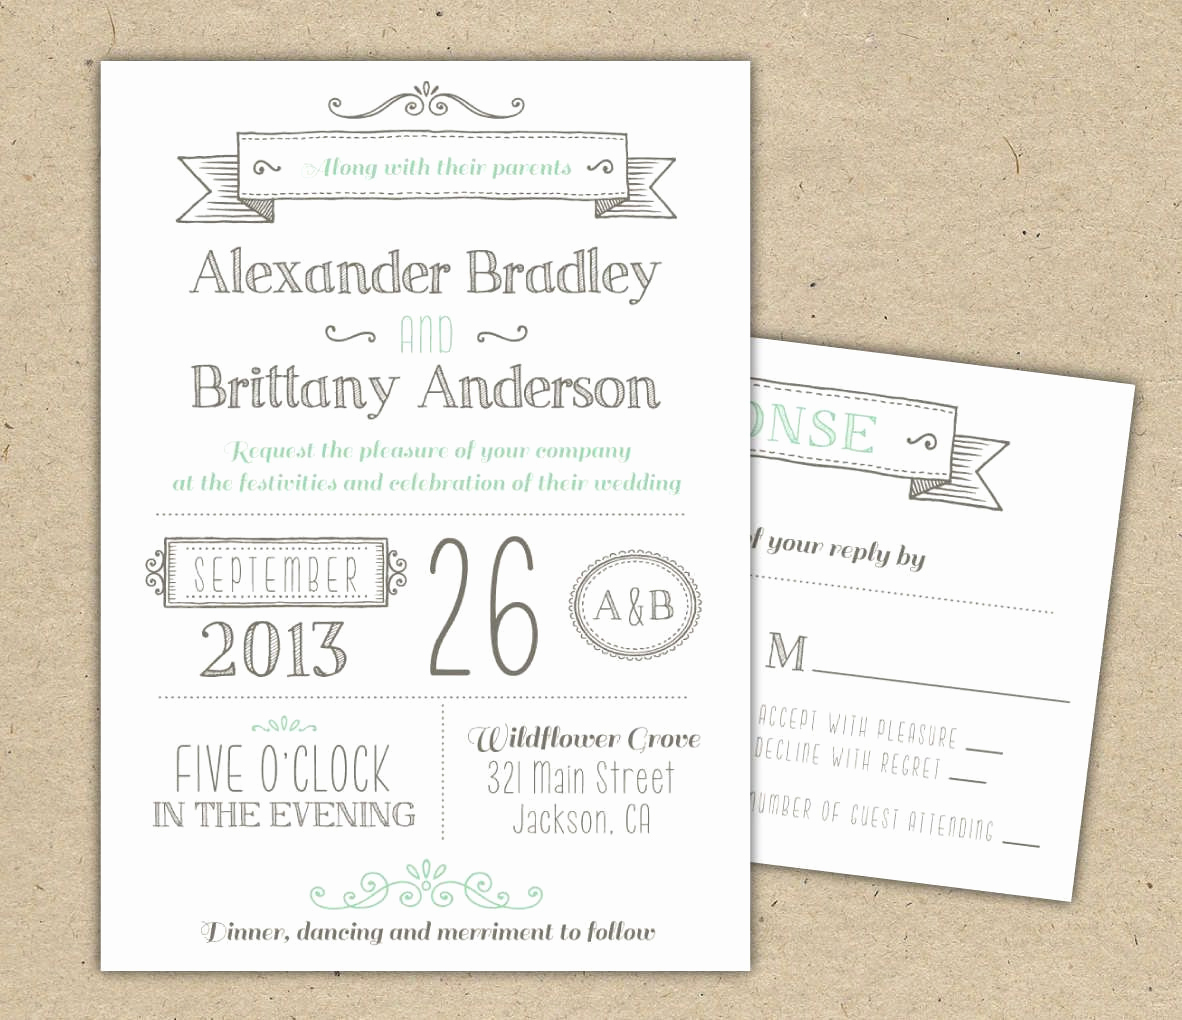 Wedding Invitation Templates Free Awesome Wedding Invitations Template Free Download